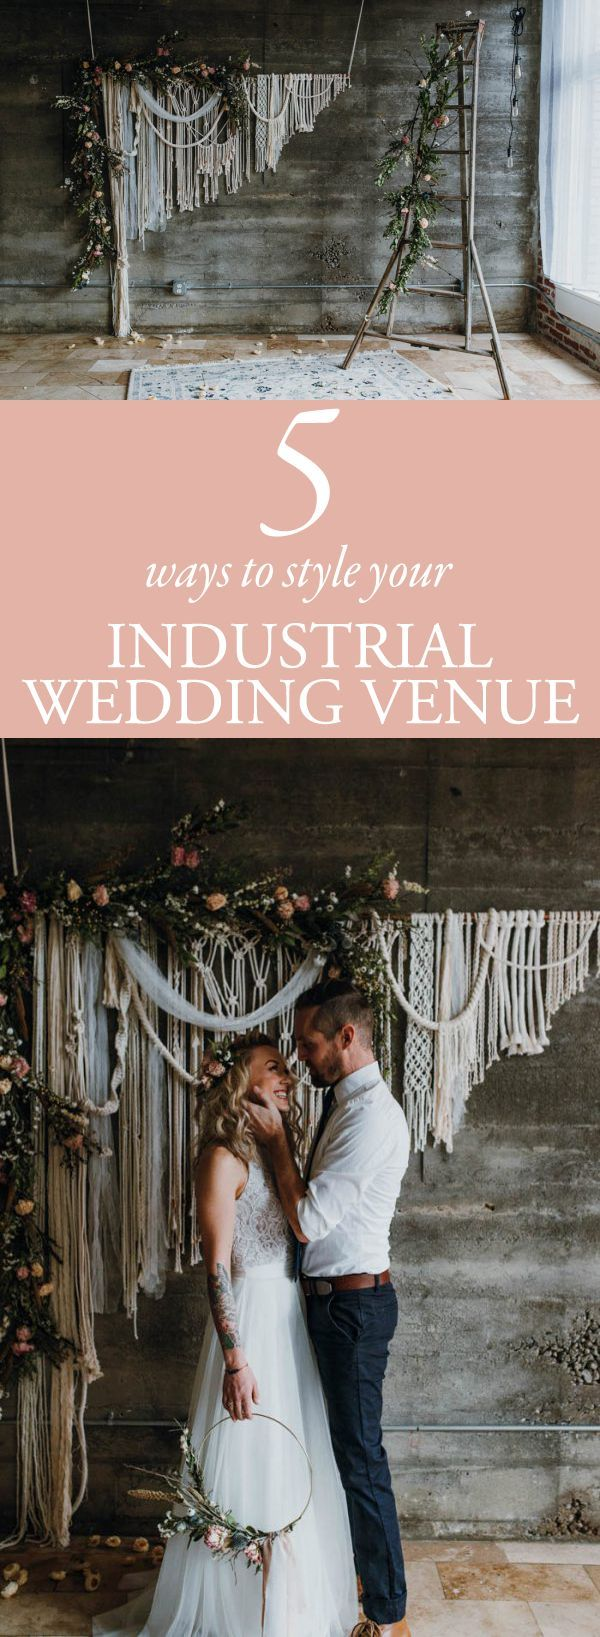 42 best Industrial Chic images on Pinterest | Dream wedding ...